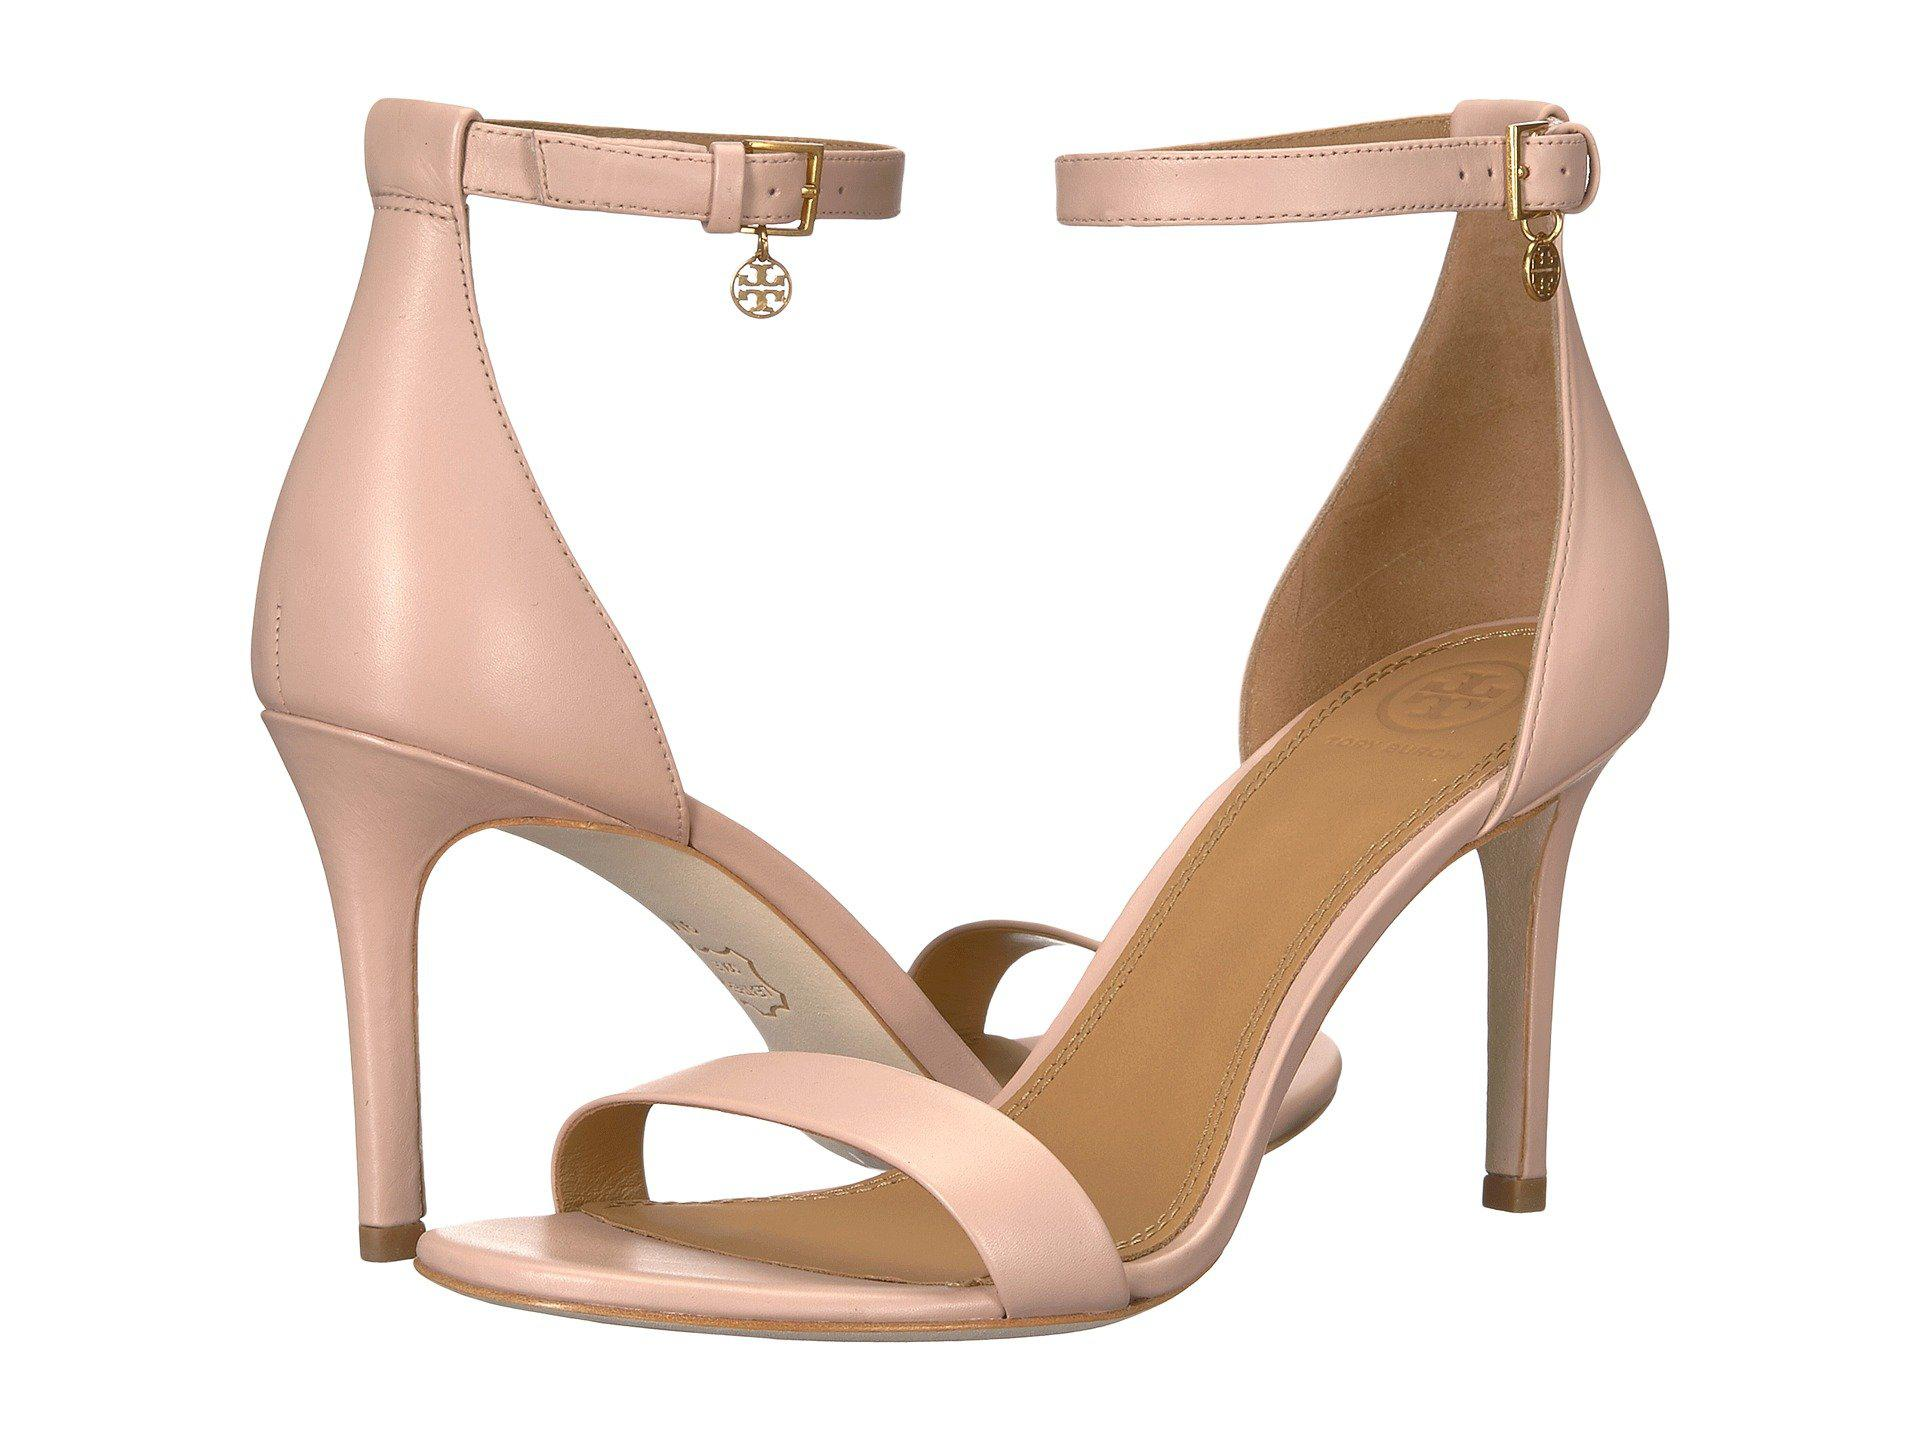 2a47c621ea0 Lyst - Tory Burch Ellie 85 Pink Sandals in Pink - Save 32%